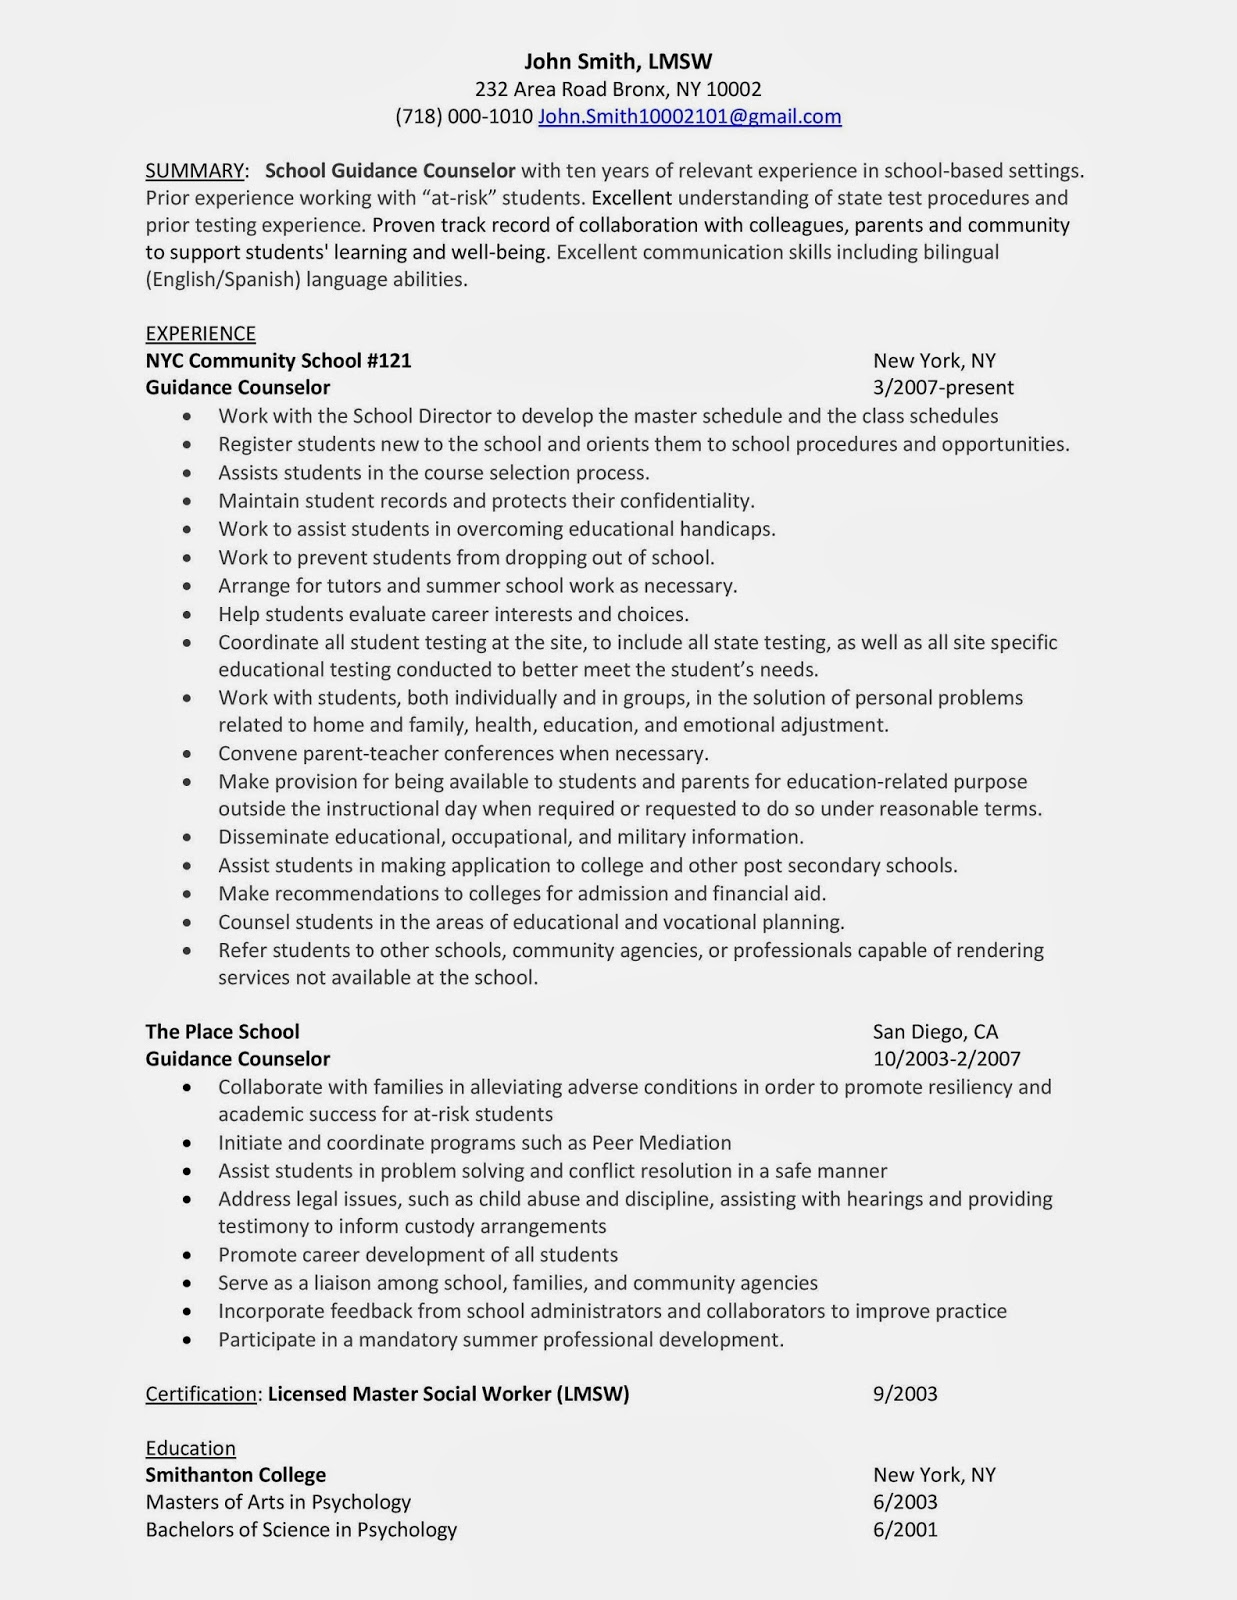 LCJS School Guidance Counselor Sample Resume